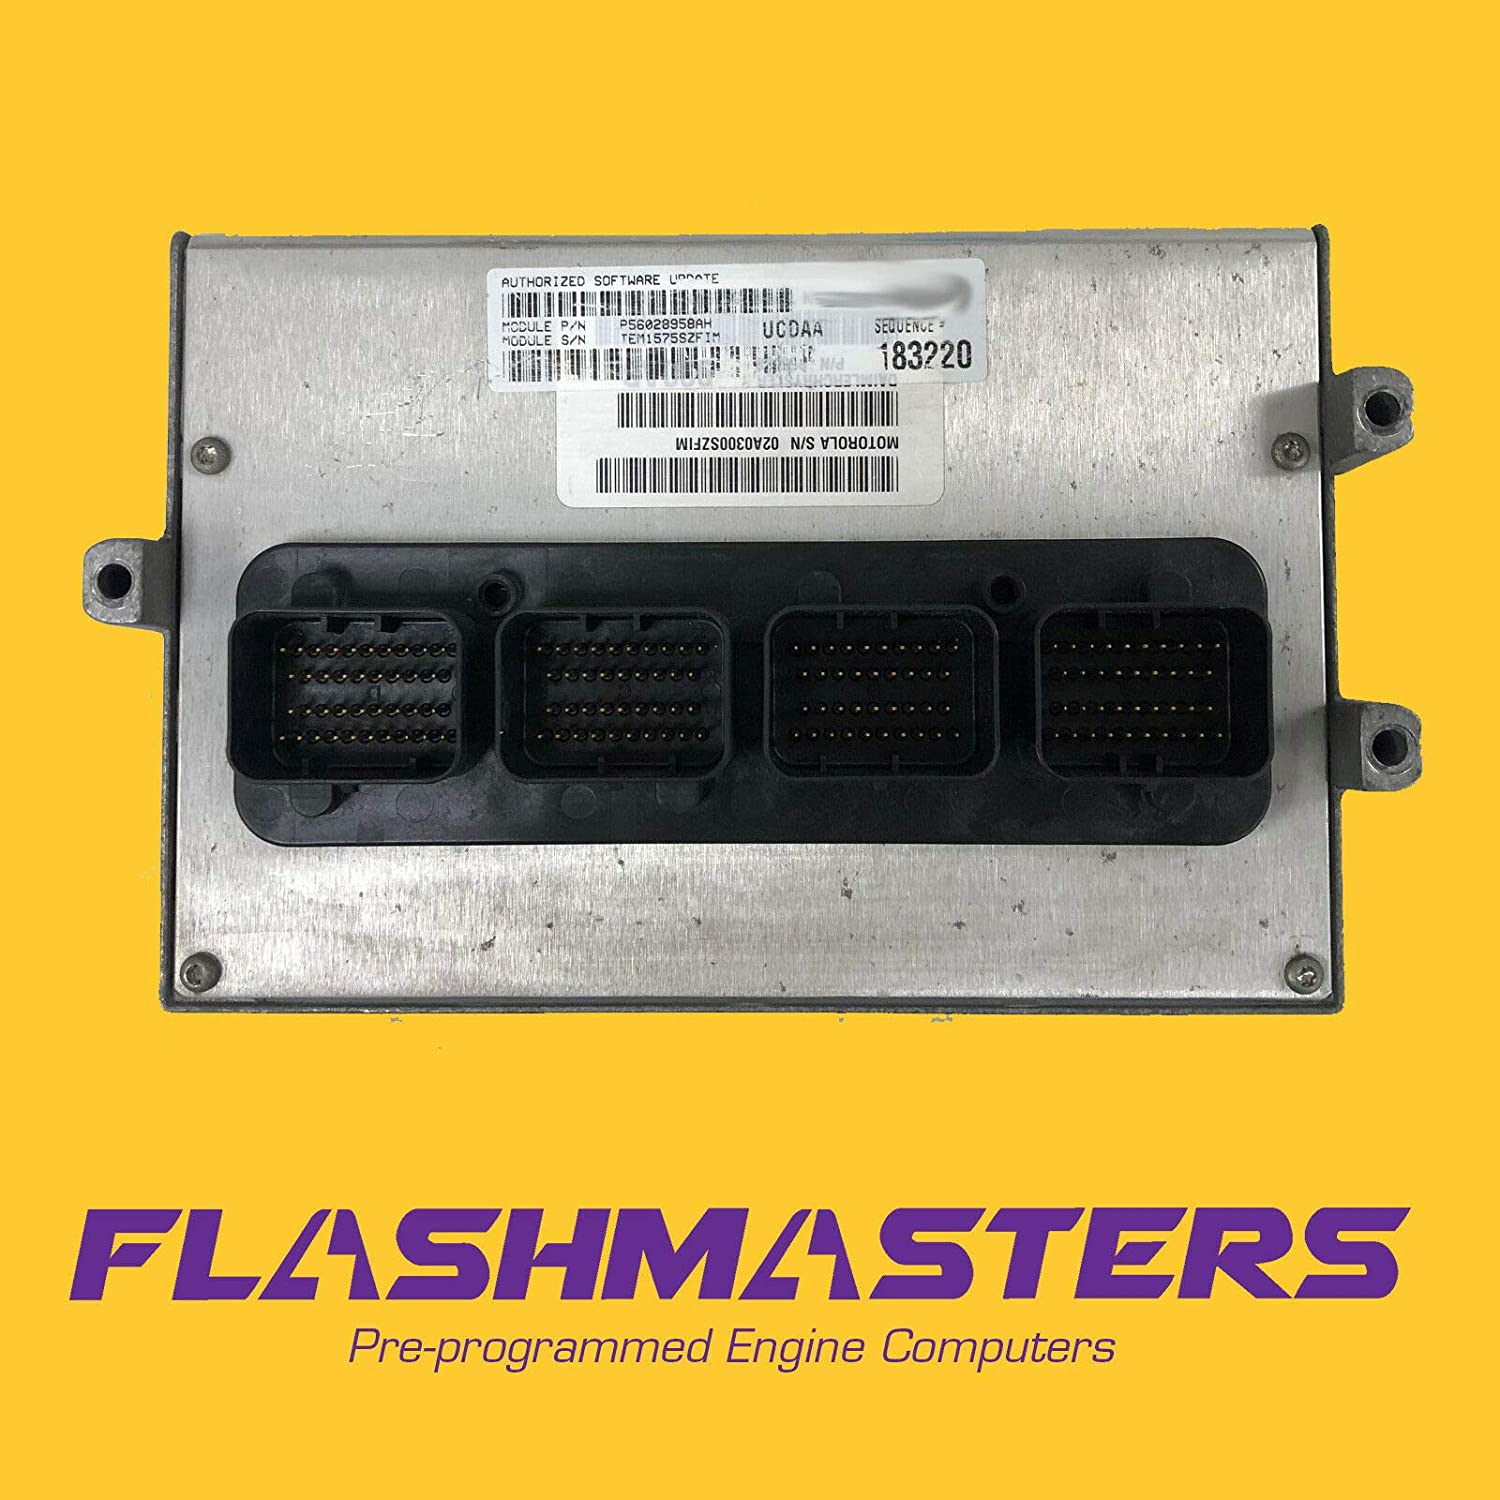 Flashmasters 2005 Compatible for Dodge Charger 5.7L Computer 4896415 ECM PCM ECU Programmed to Your VIN